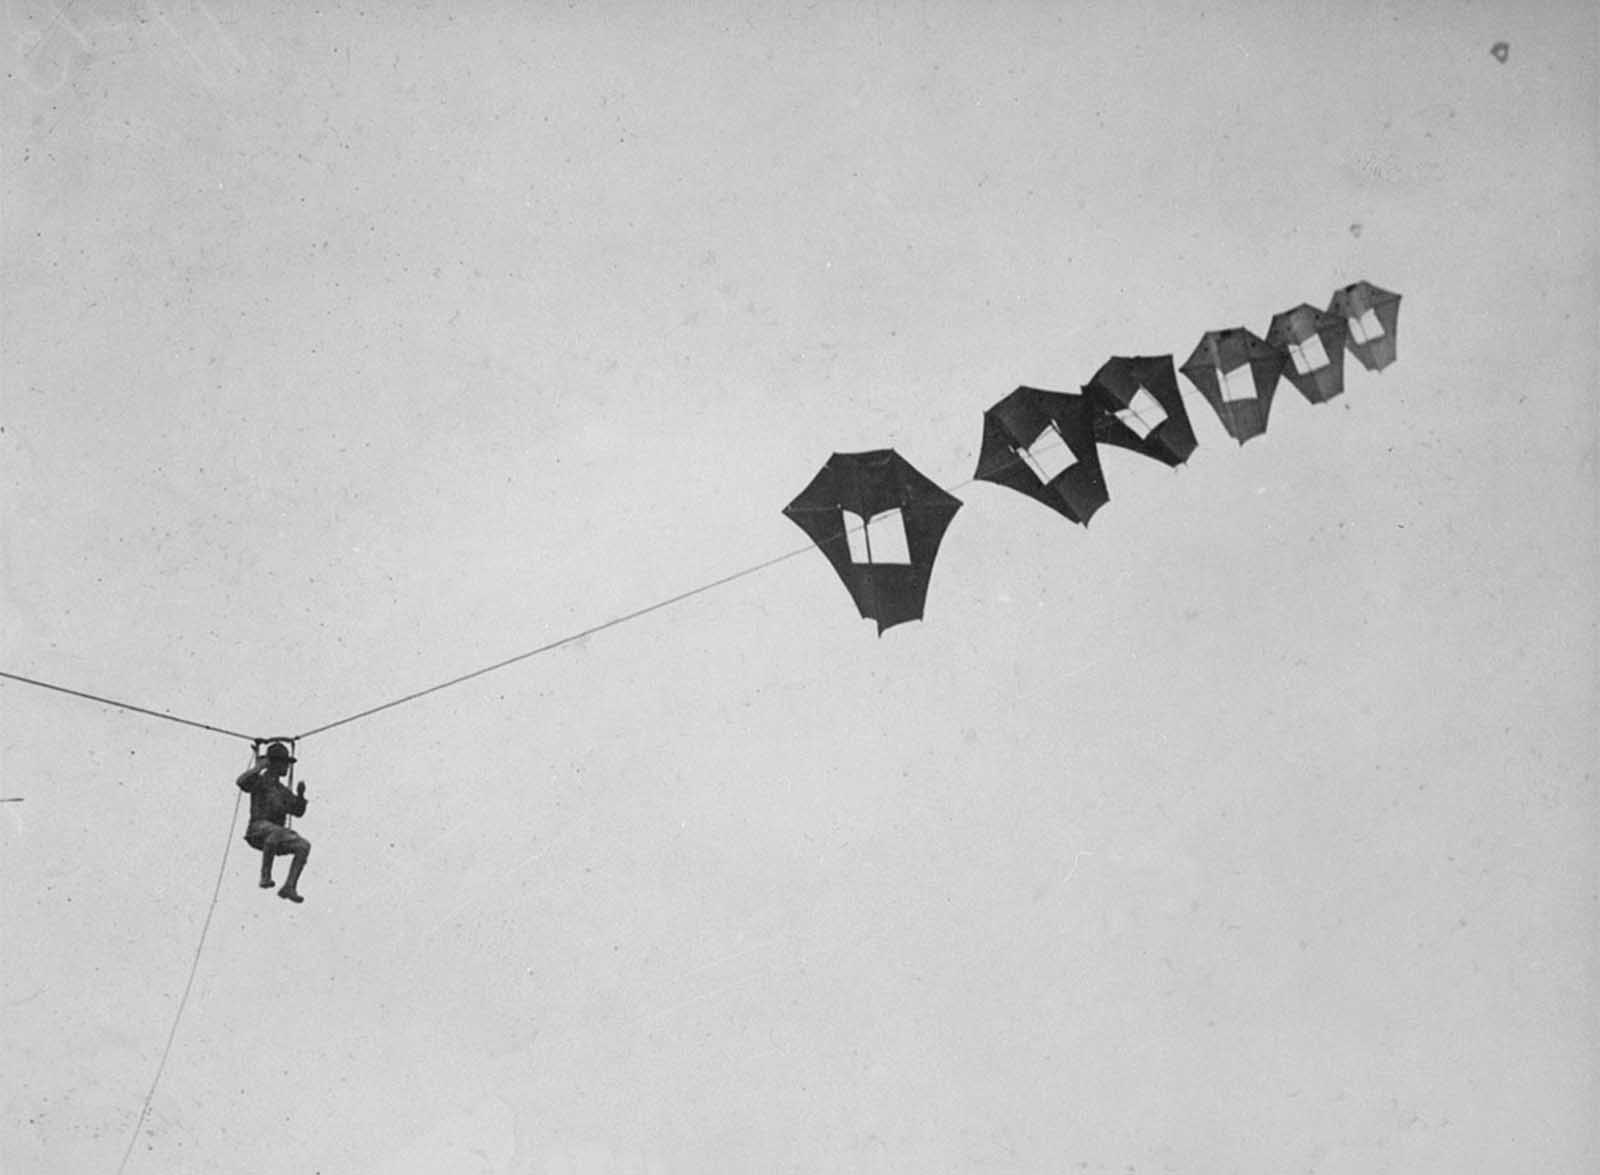 Lieutenant Kirk Booth of the U.S. Signal Corps being lifted skyward by the giant Perkins man-carrying kite at Camp Devens, Ayer, Massachusetts. While the United States never used these kites during the war, the German and French armies put some to use on the front lines.